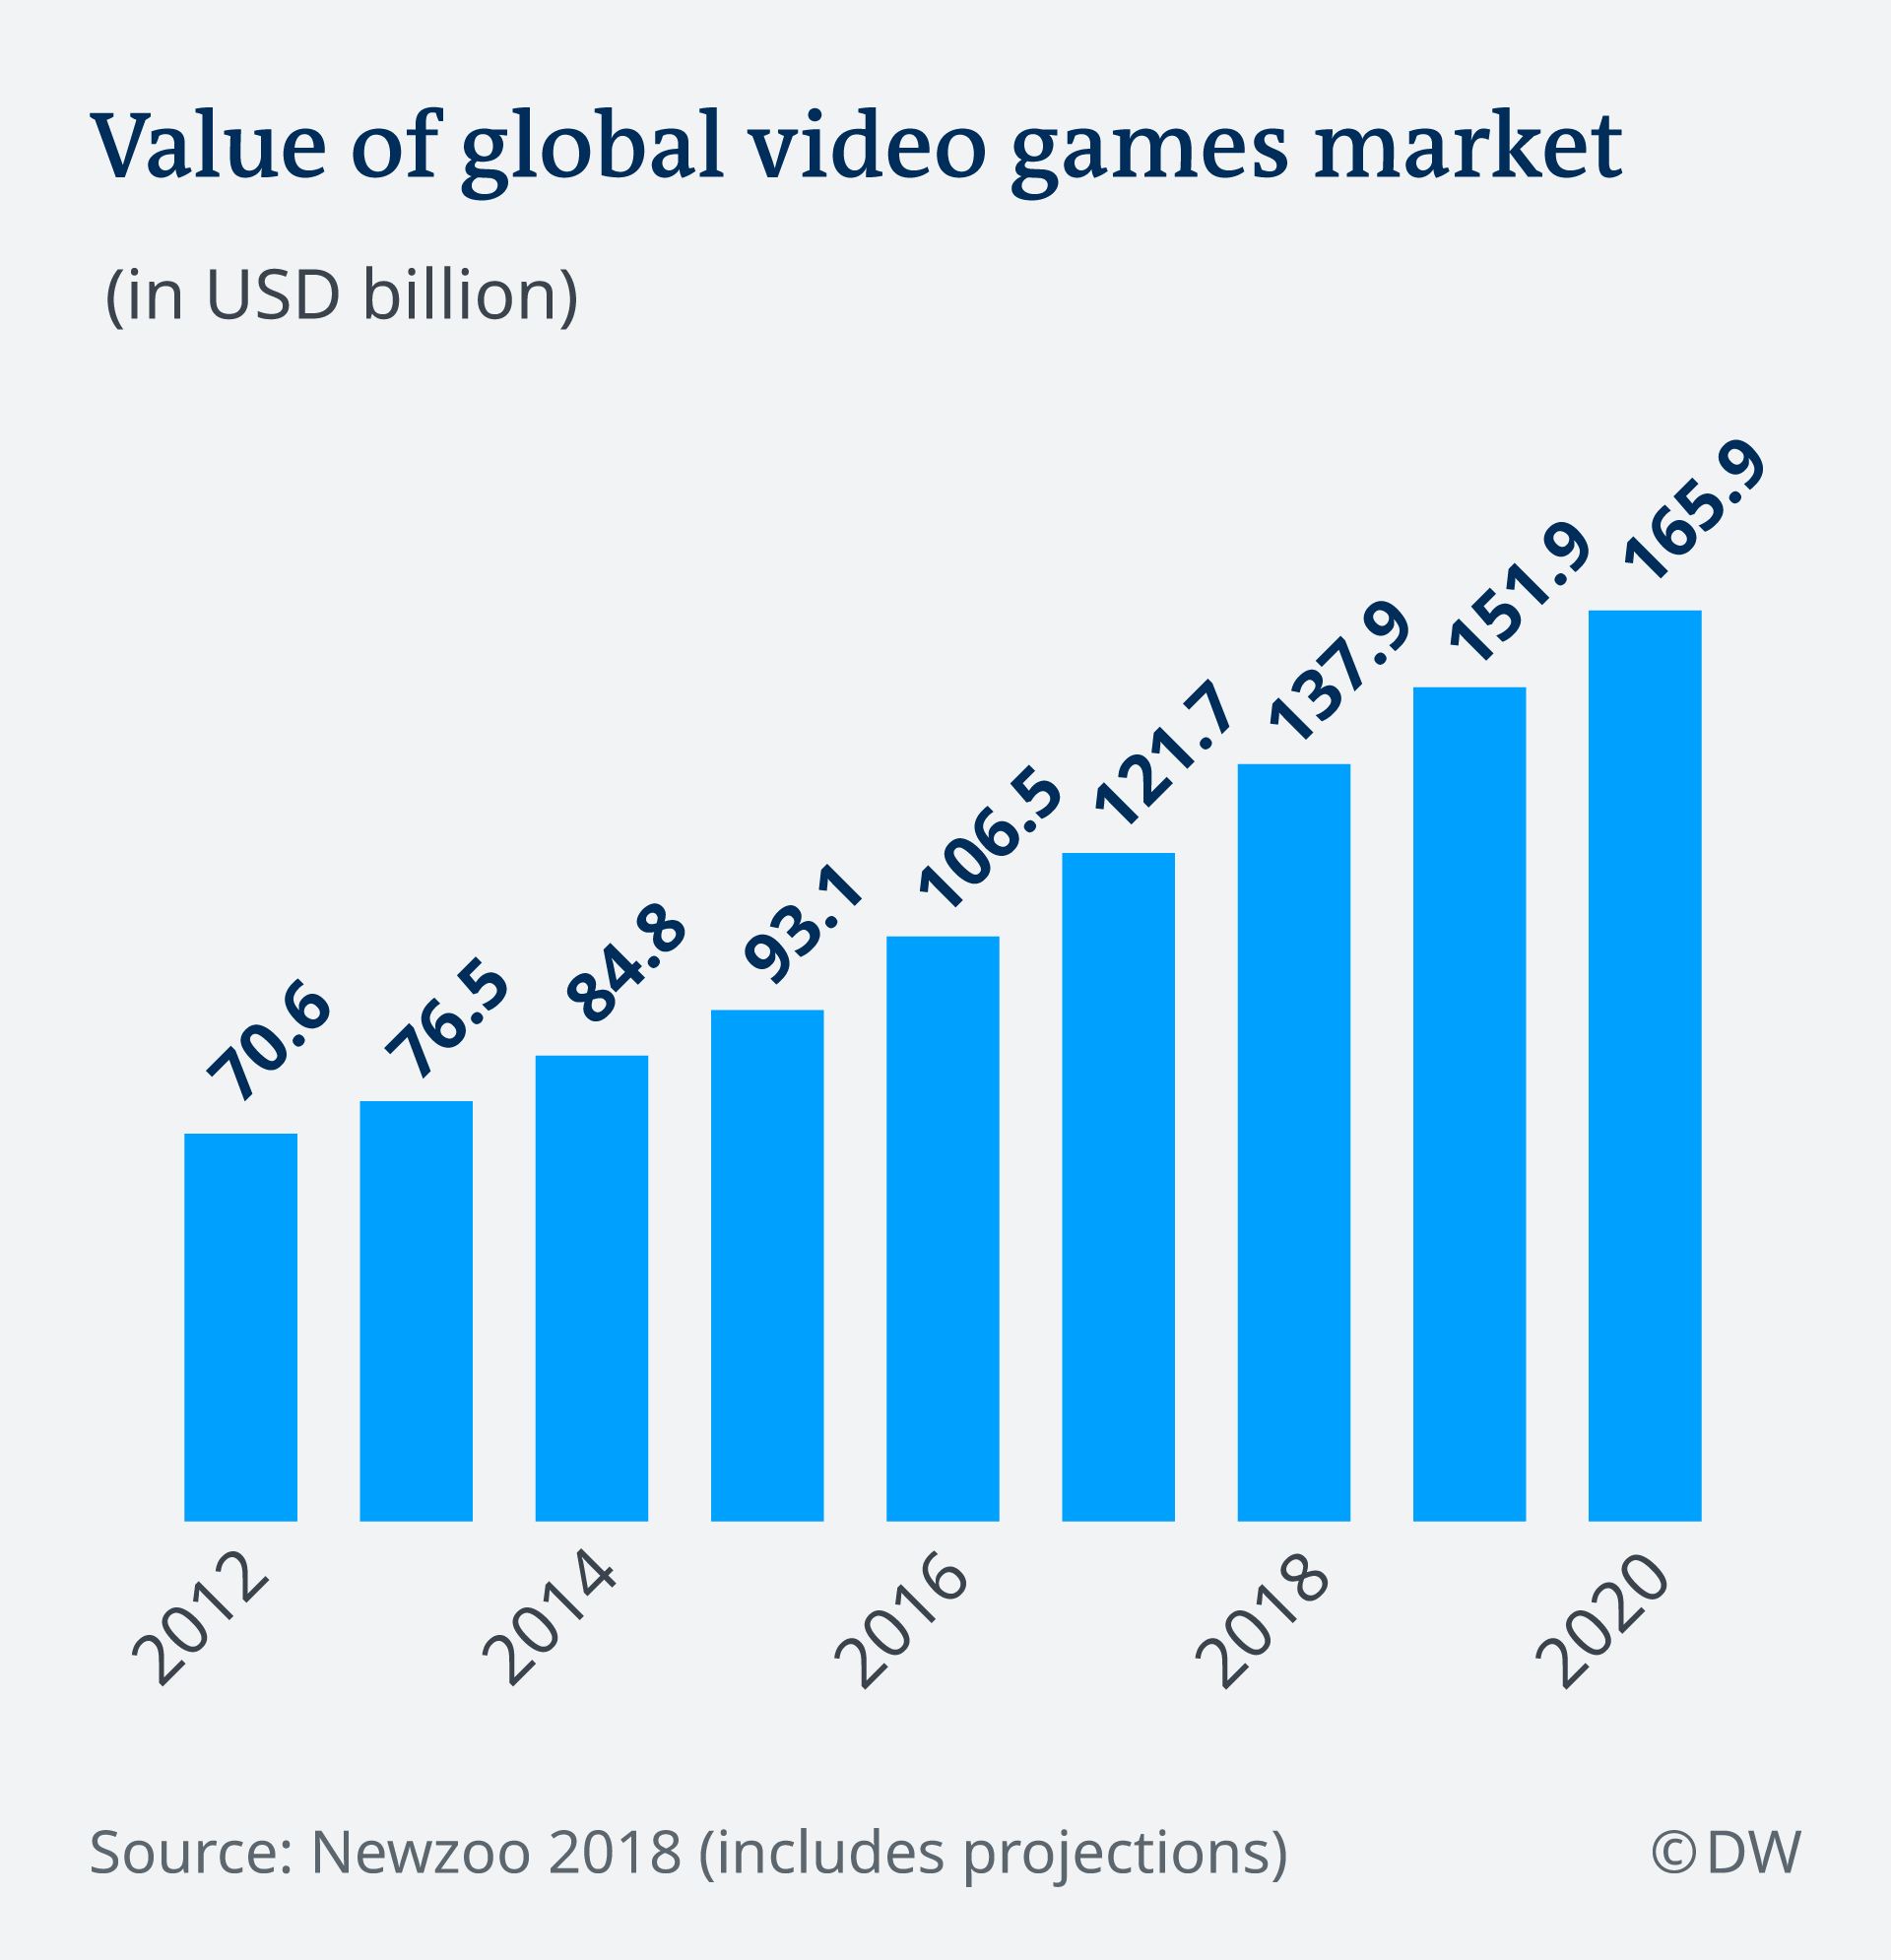 Infographic showing value of global video games market